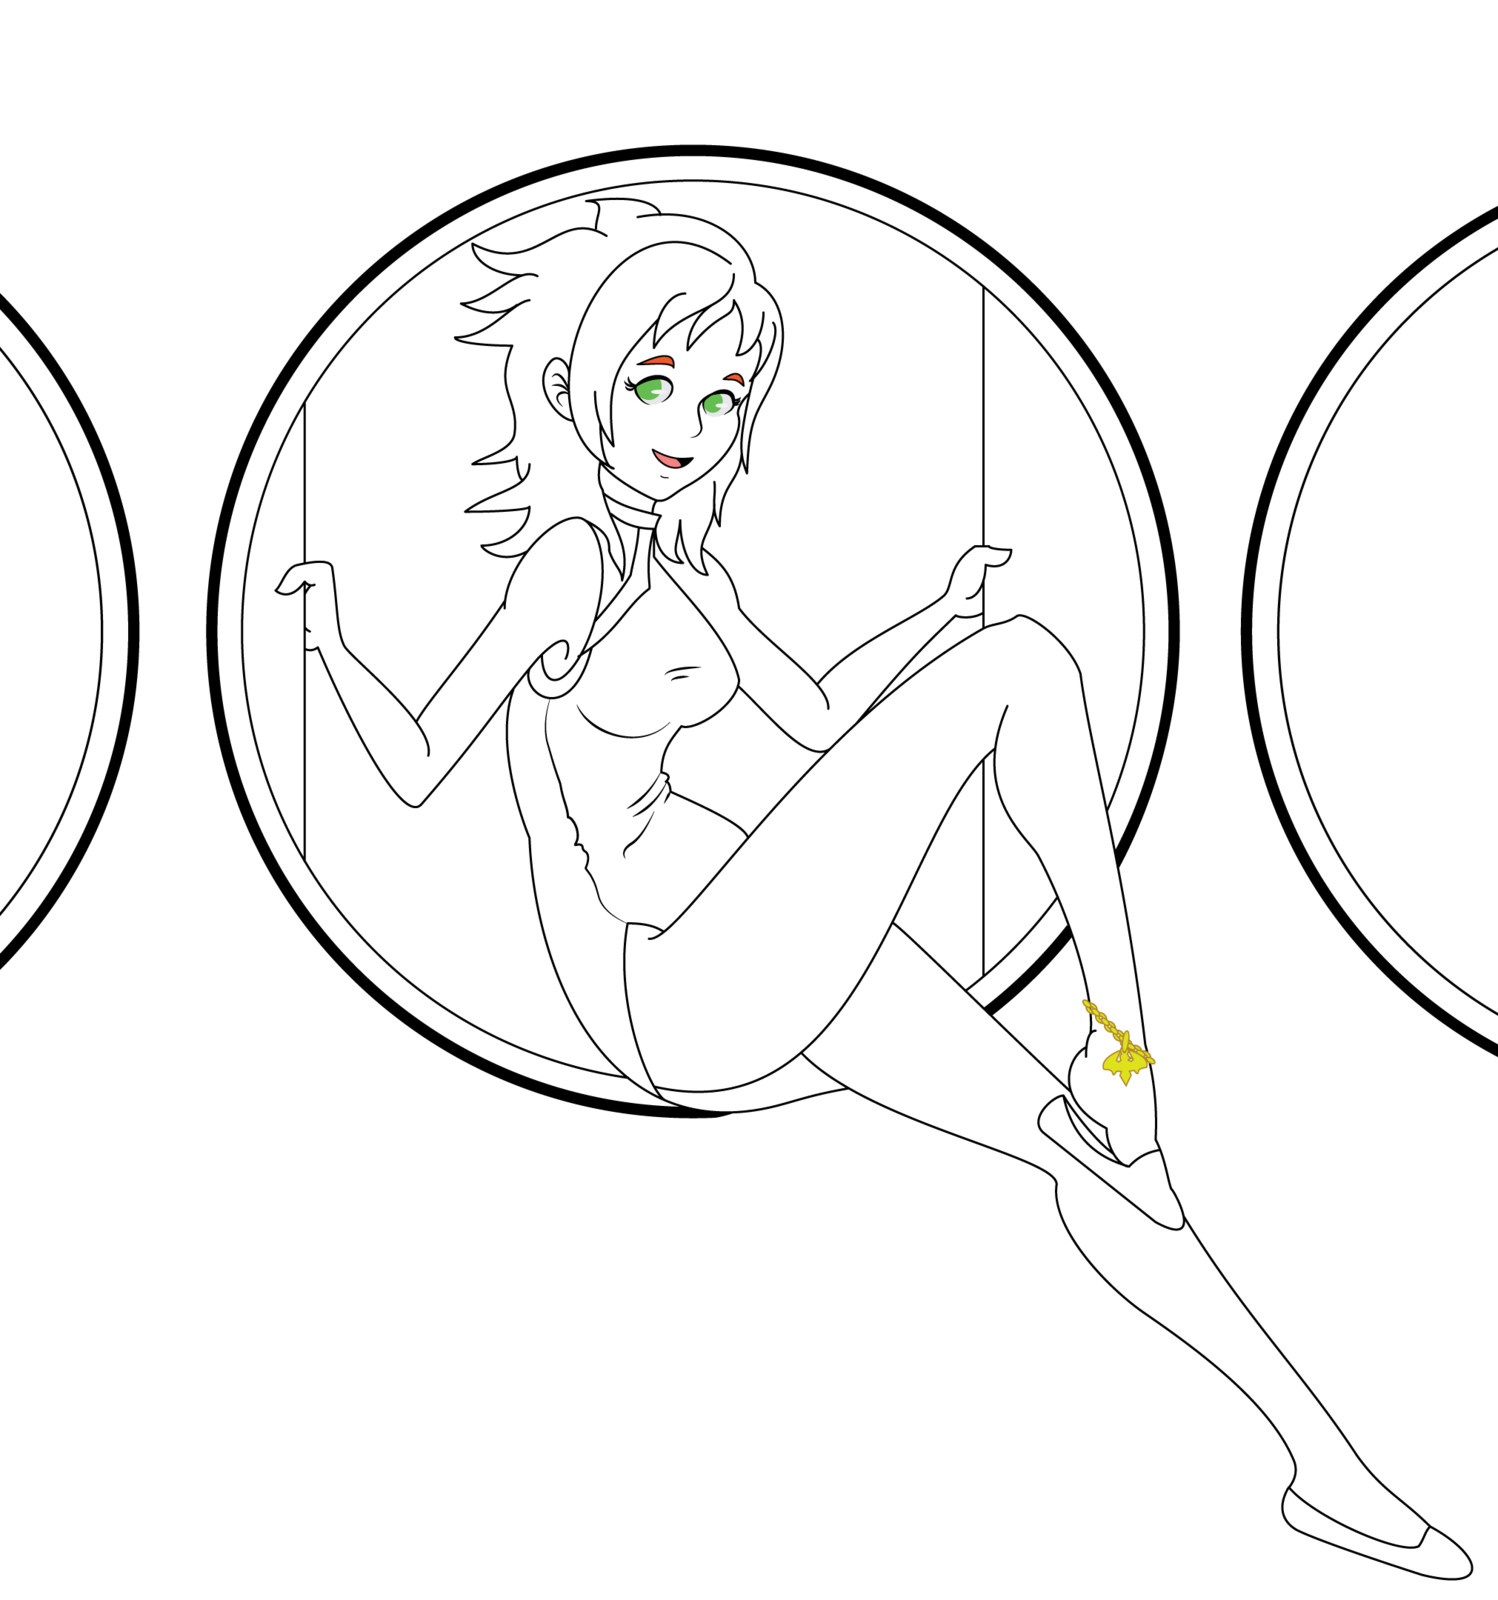 Line Art before coloring